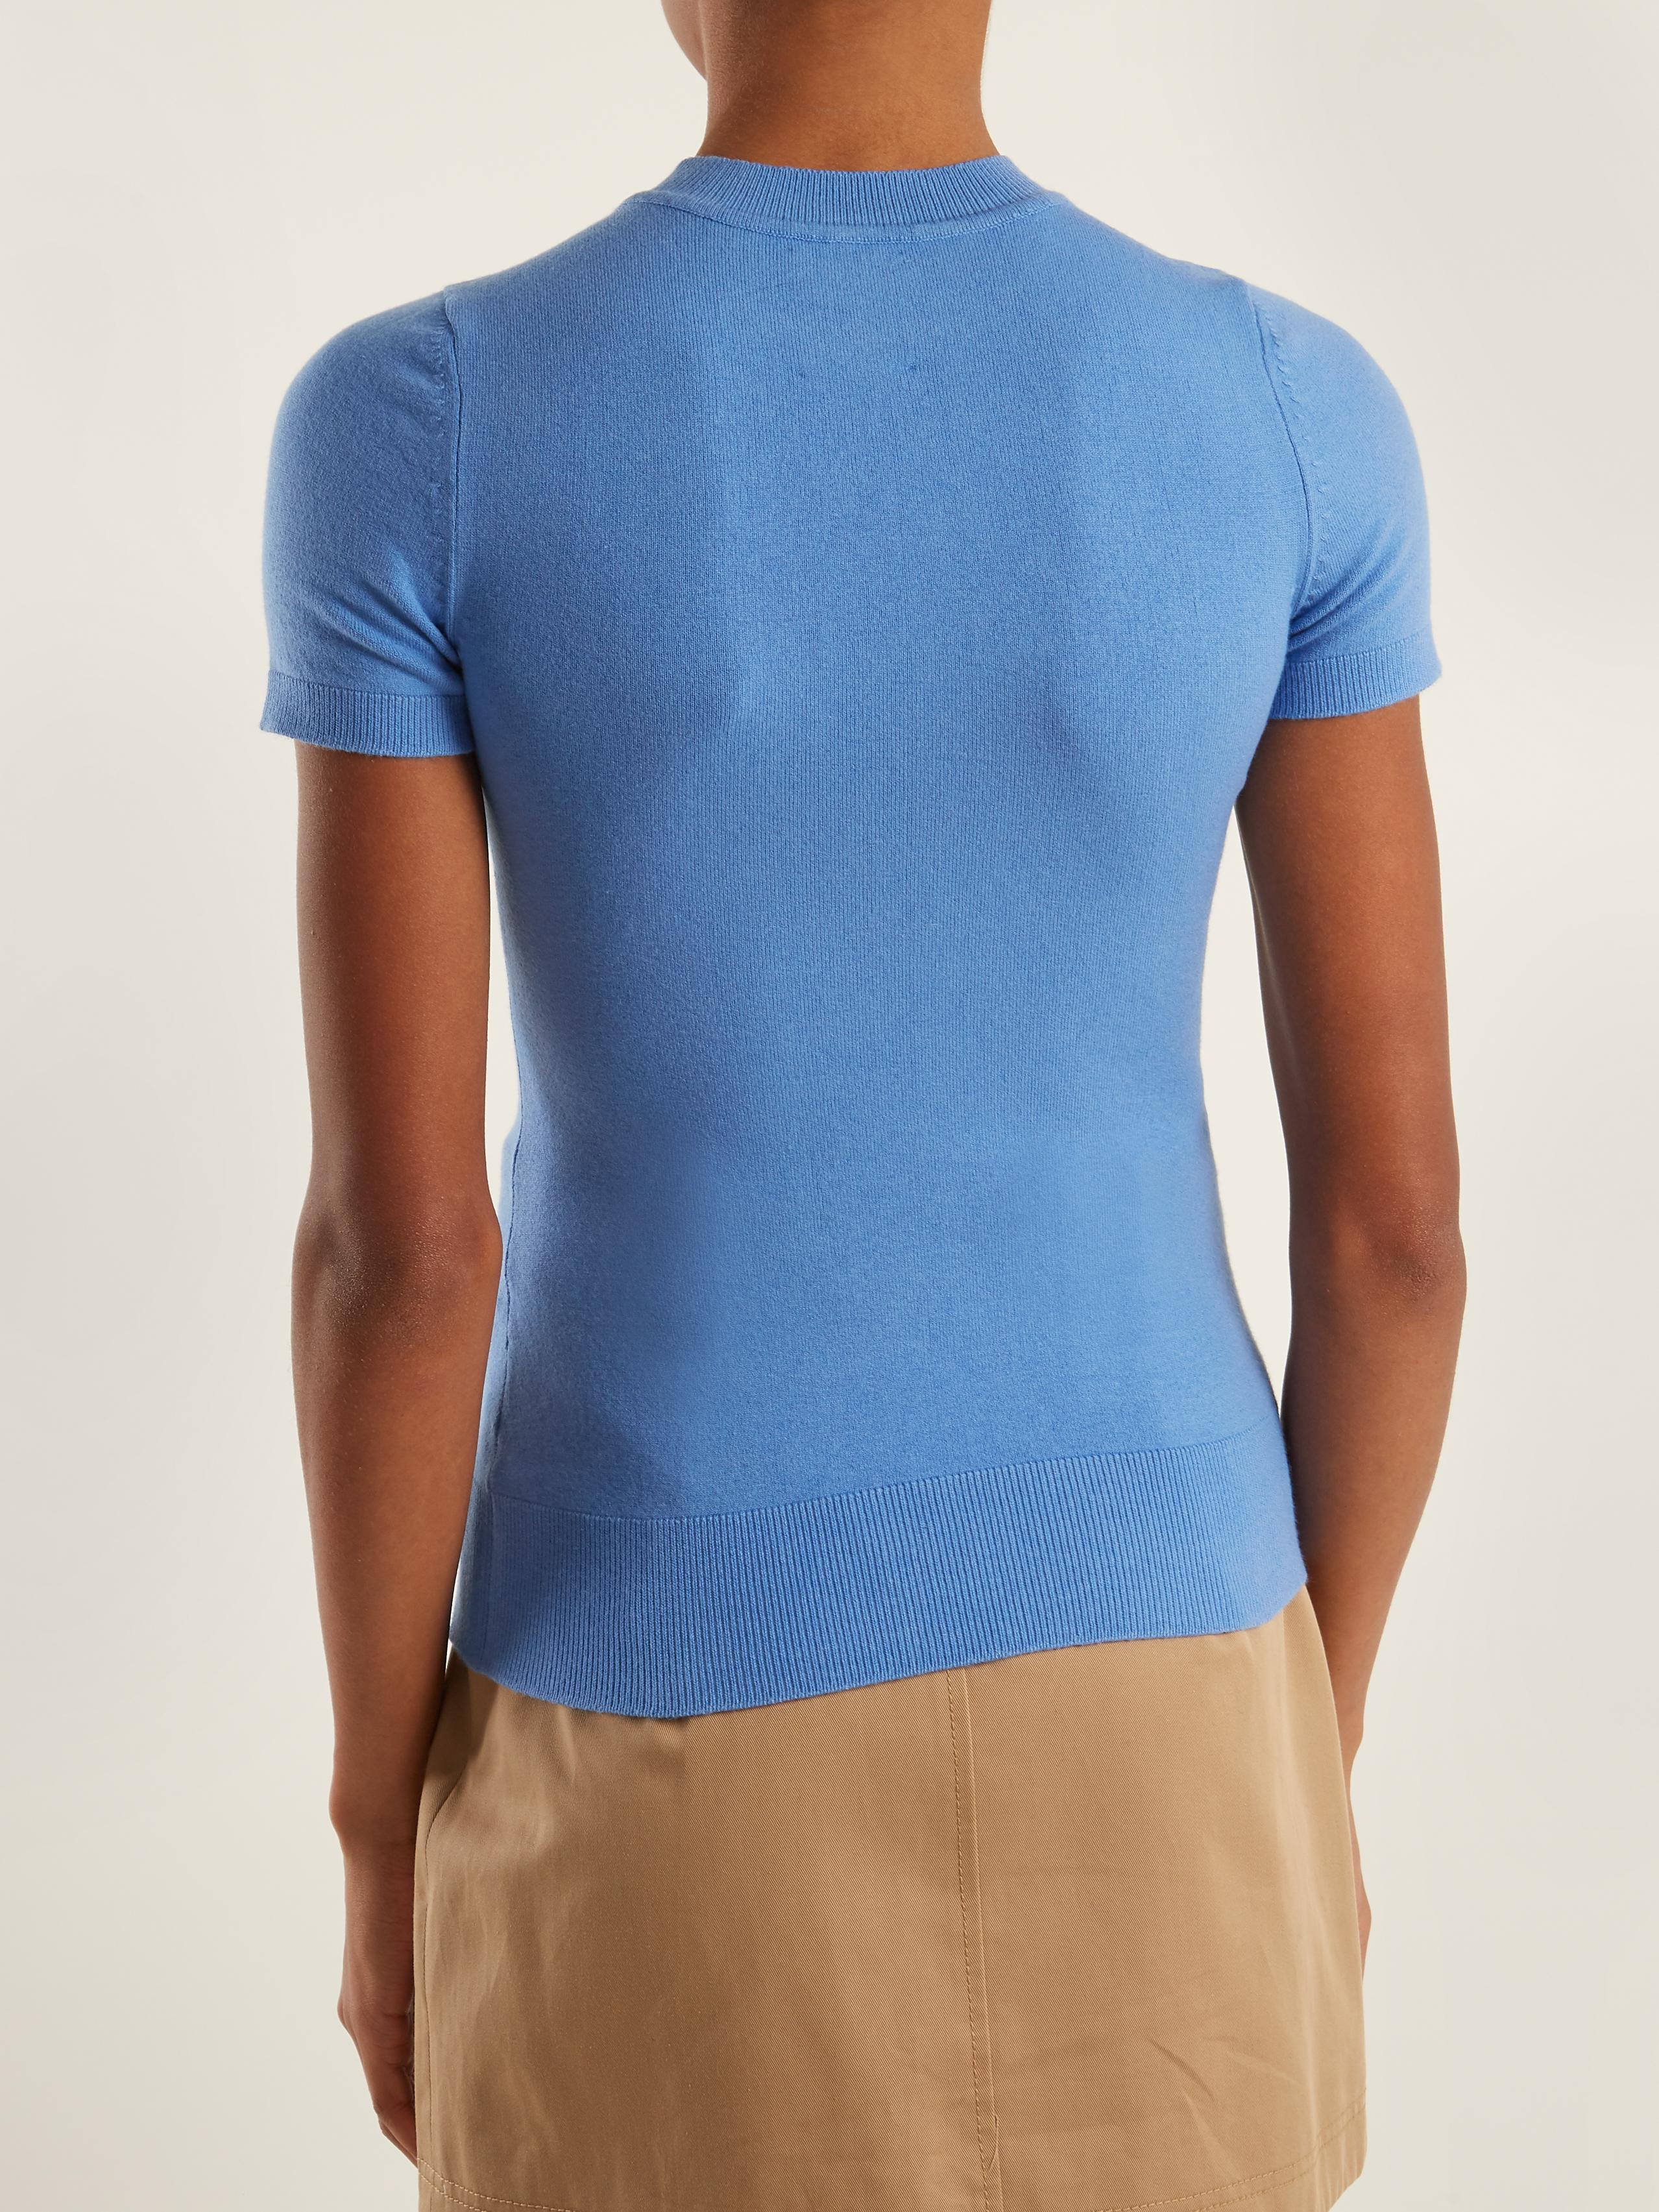 Joos tricot Crew-neck Short-sleeved Knit Sweater in Blue | Lyst